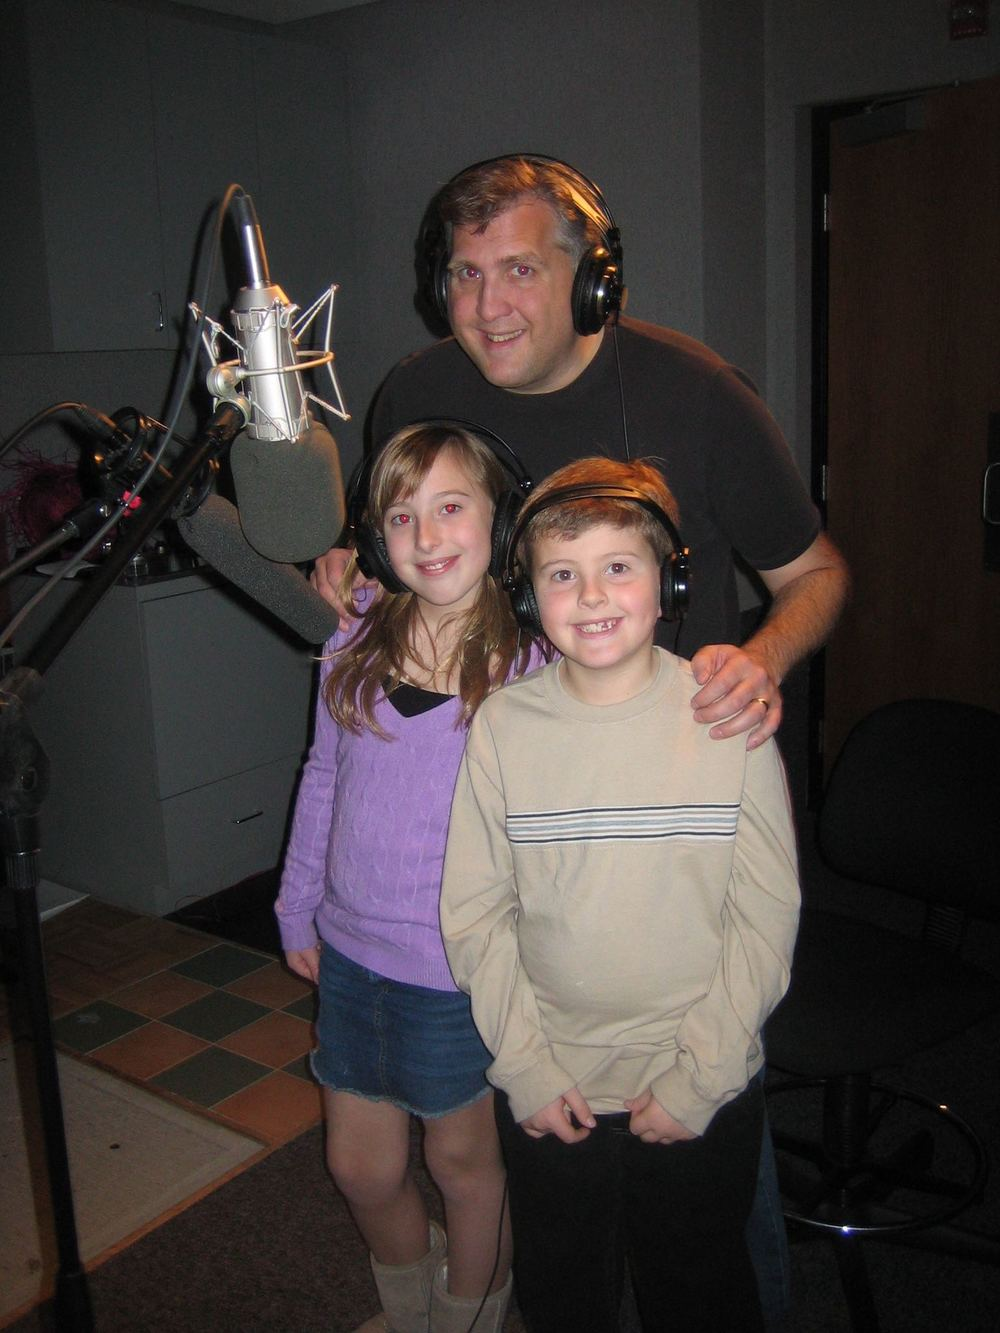 Daniel Roebuck (Paul Rocco) with his daughter, Grace Roebuck (Orphan 'Doctor') and son, Buster Roebuck (Bully/Orphan 'Accountant')